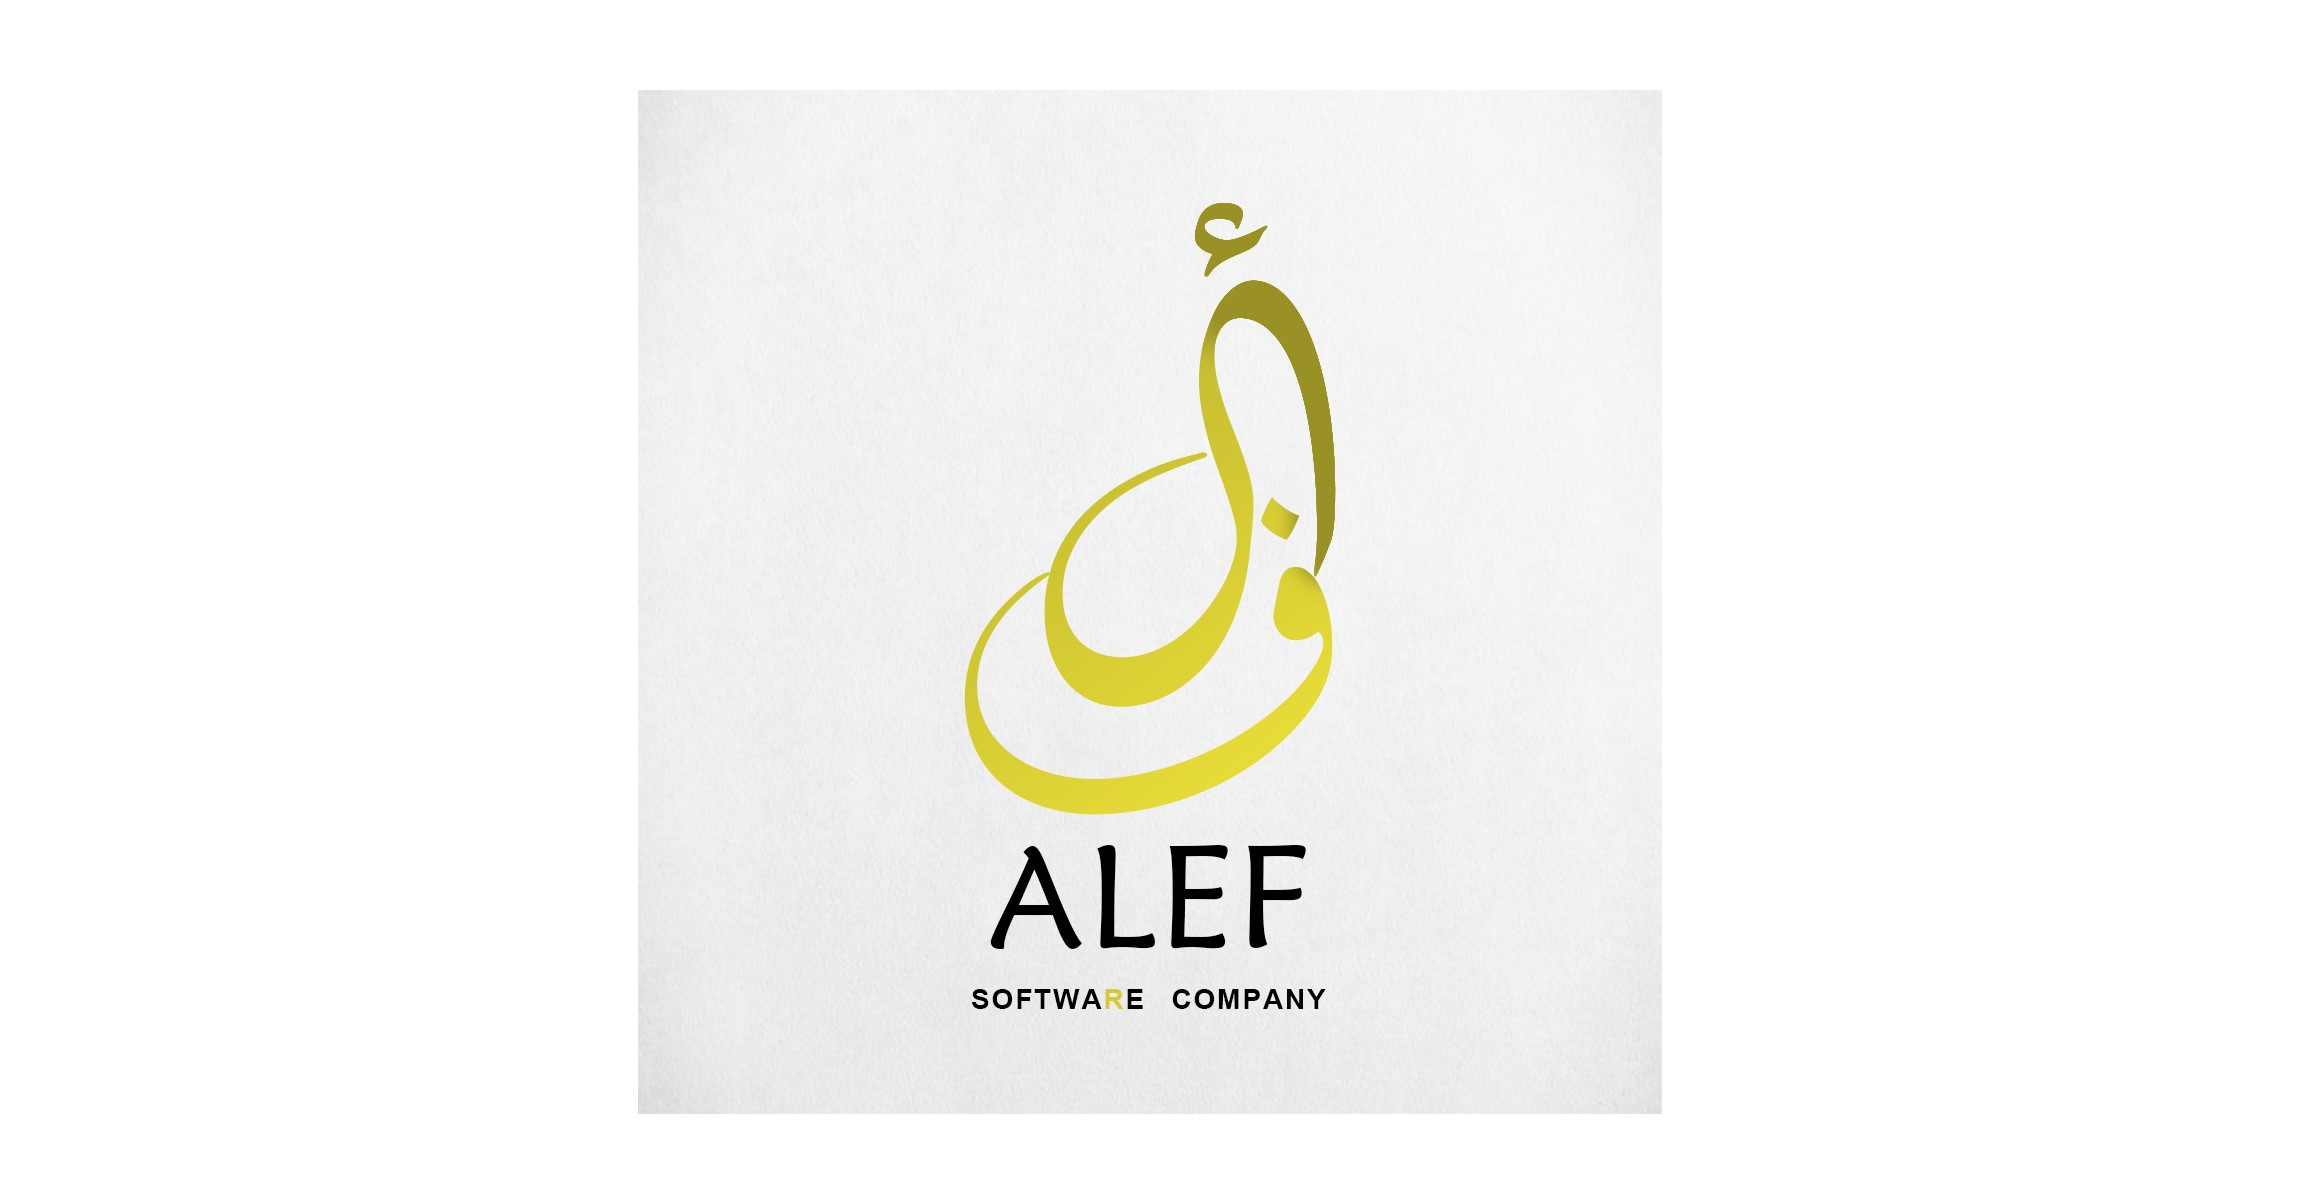 صورة Job: Senior Android Developer at Alef Software Company in Alexandria, Egypt